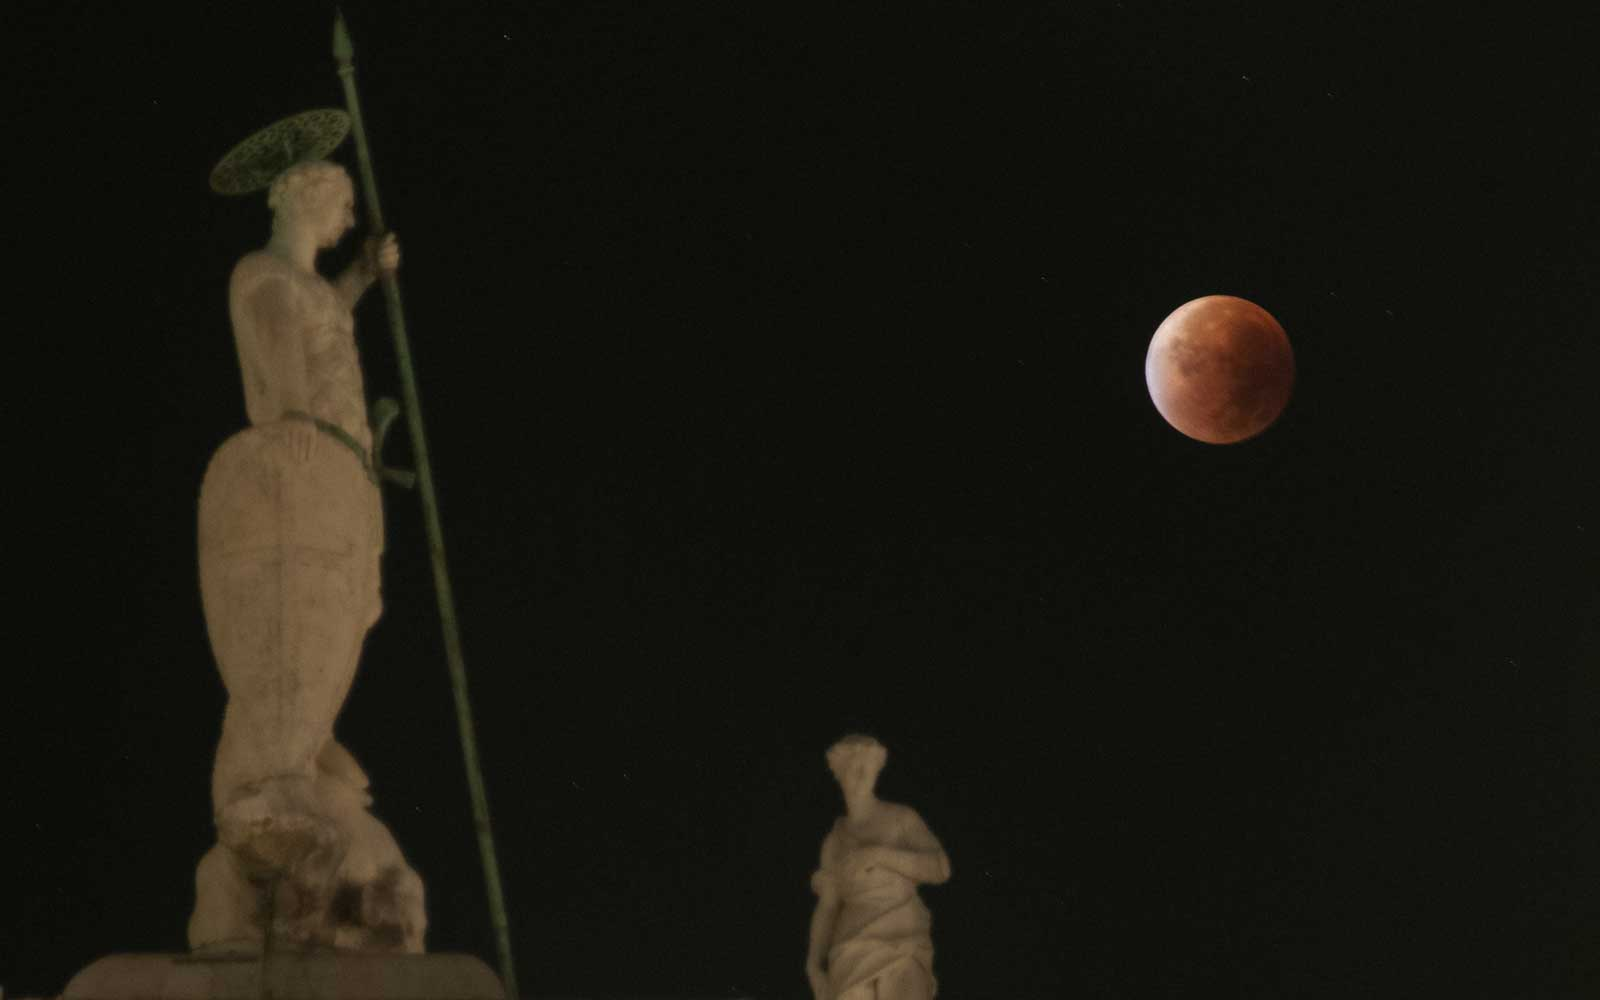 Super Blue Blood-Moon Eclipse Occurring Jan 31: How to See It